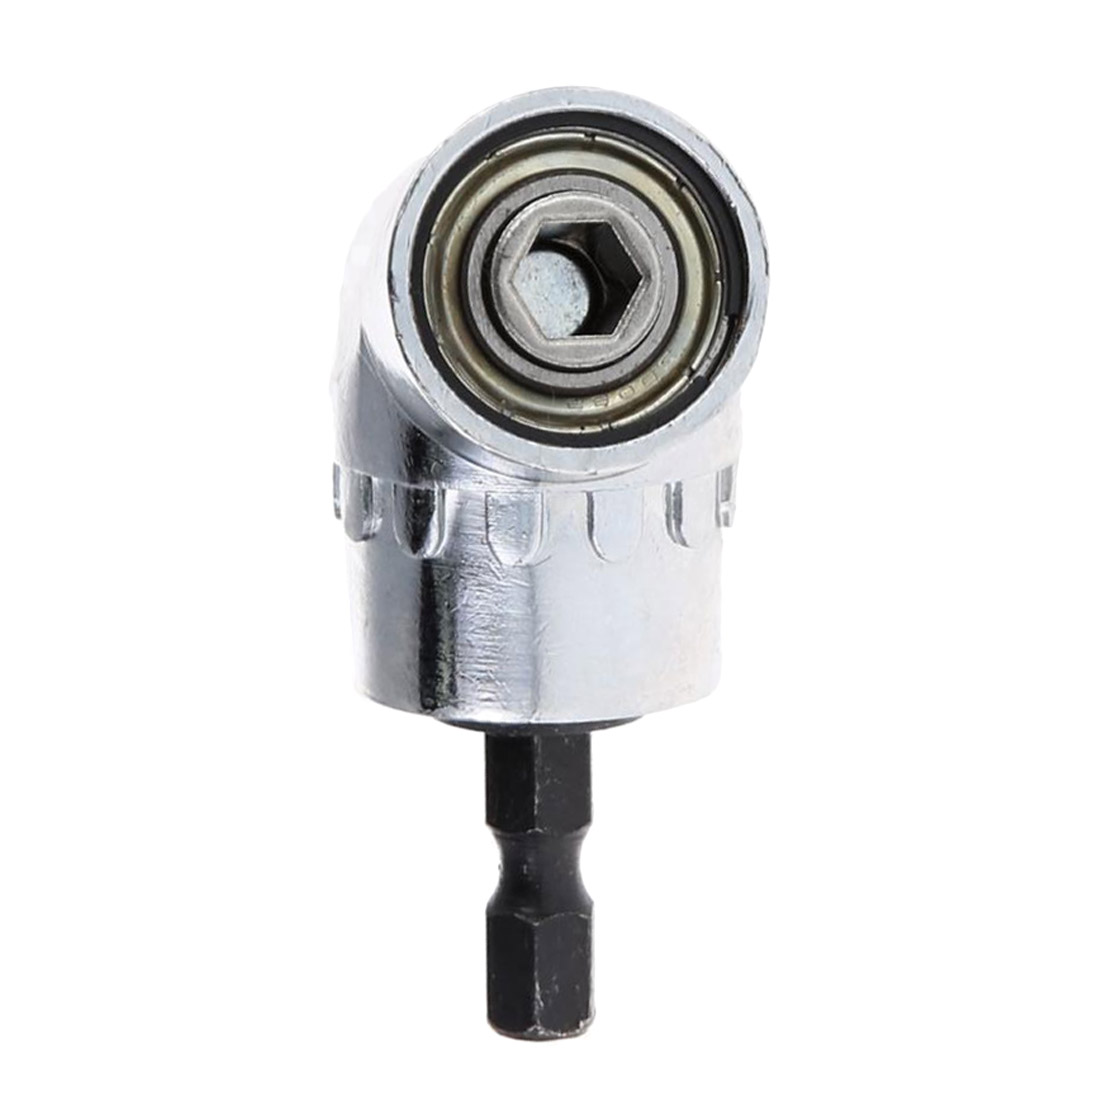 1pc 1/4 Hex Shank Screwdriver 105 Degree Magnetic Bit Angle Extension Screw Driver Holder Adaptor